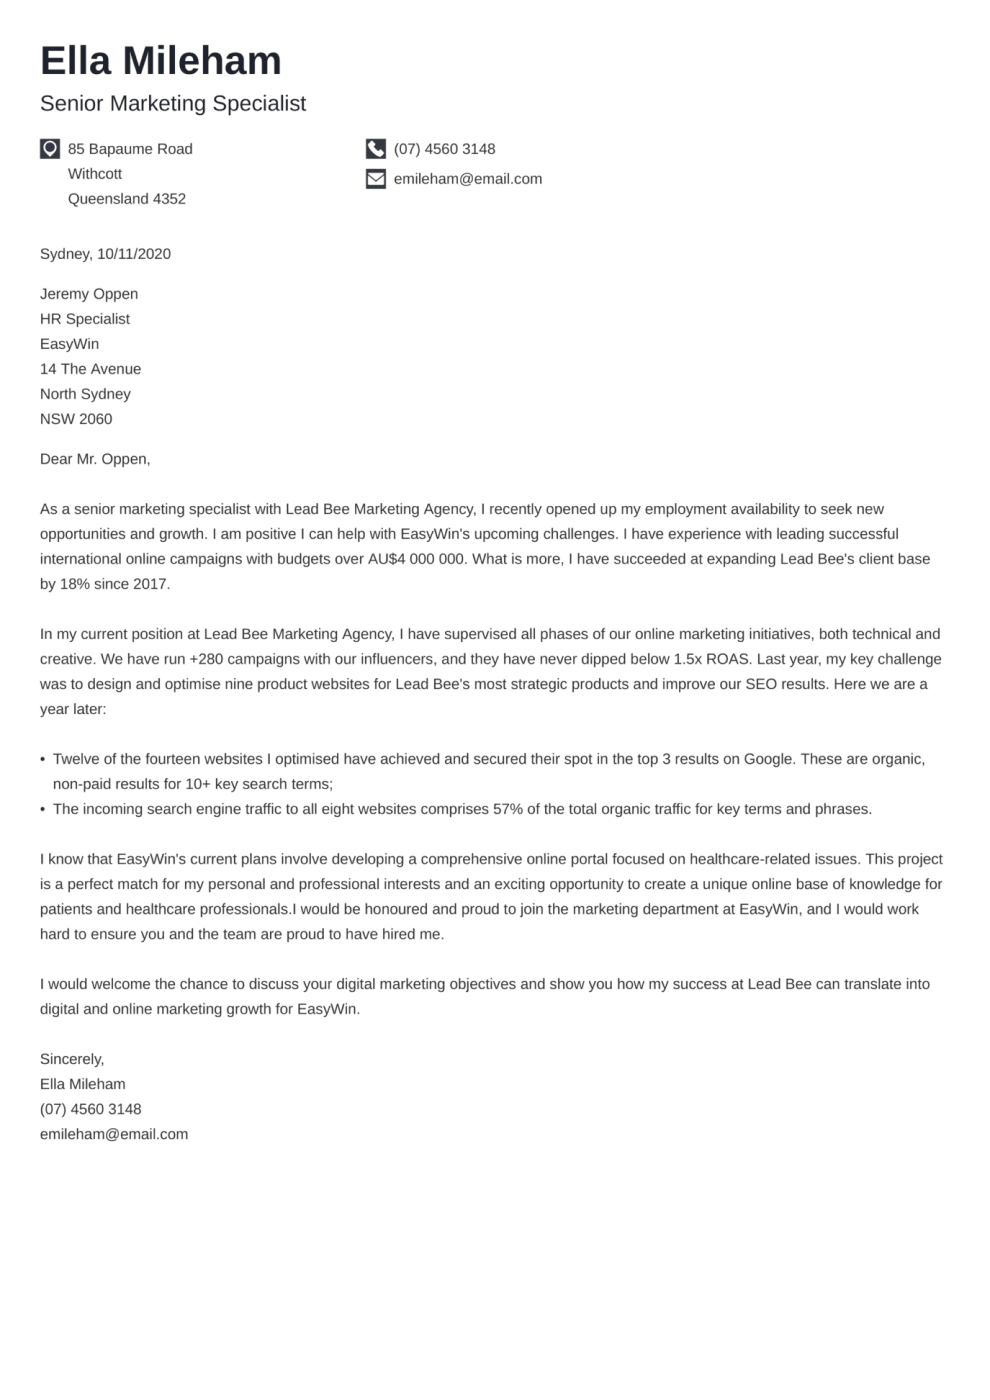 Iconic cover letter template